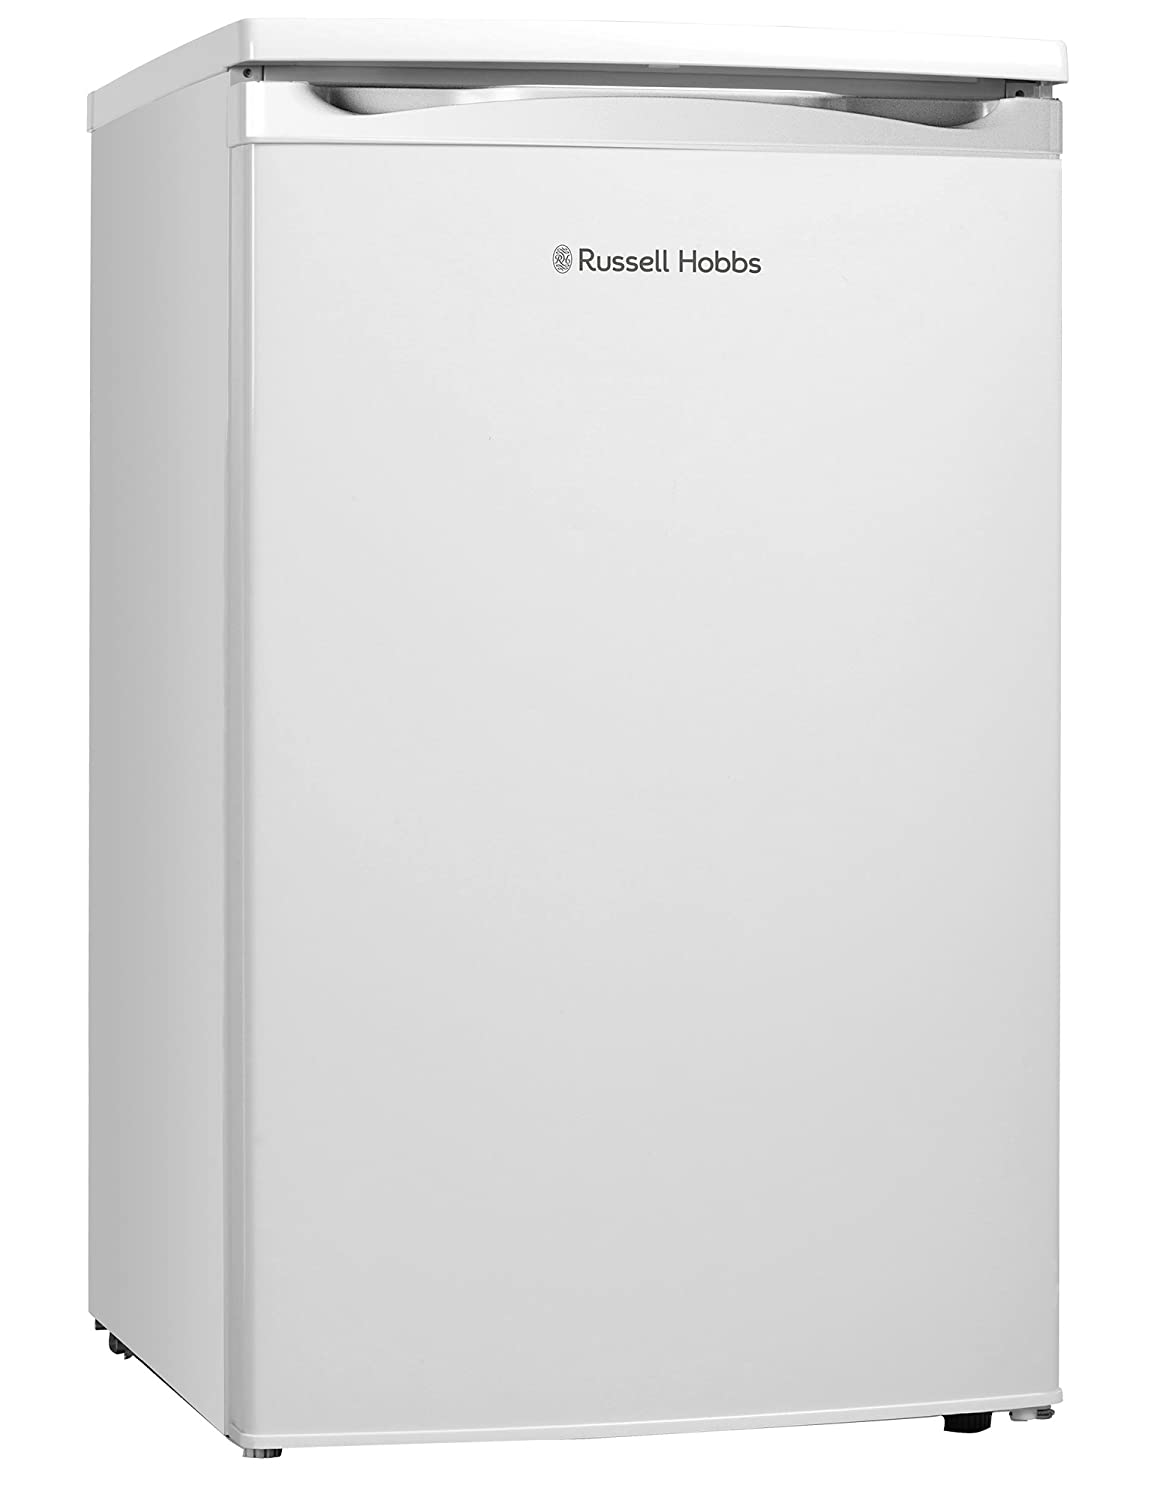 Russell Hobbs RHUCFZ3W White Under Counter 50cm Wide Freestanding Freezer, Free 2 Year Guarantee [Energy Class A+] Russel Hobbs